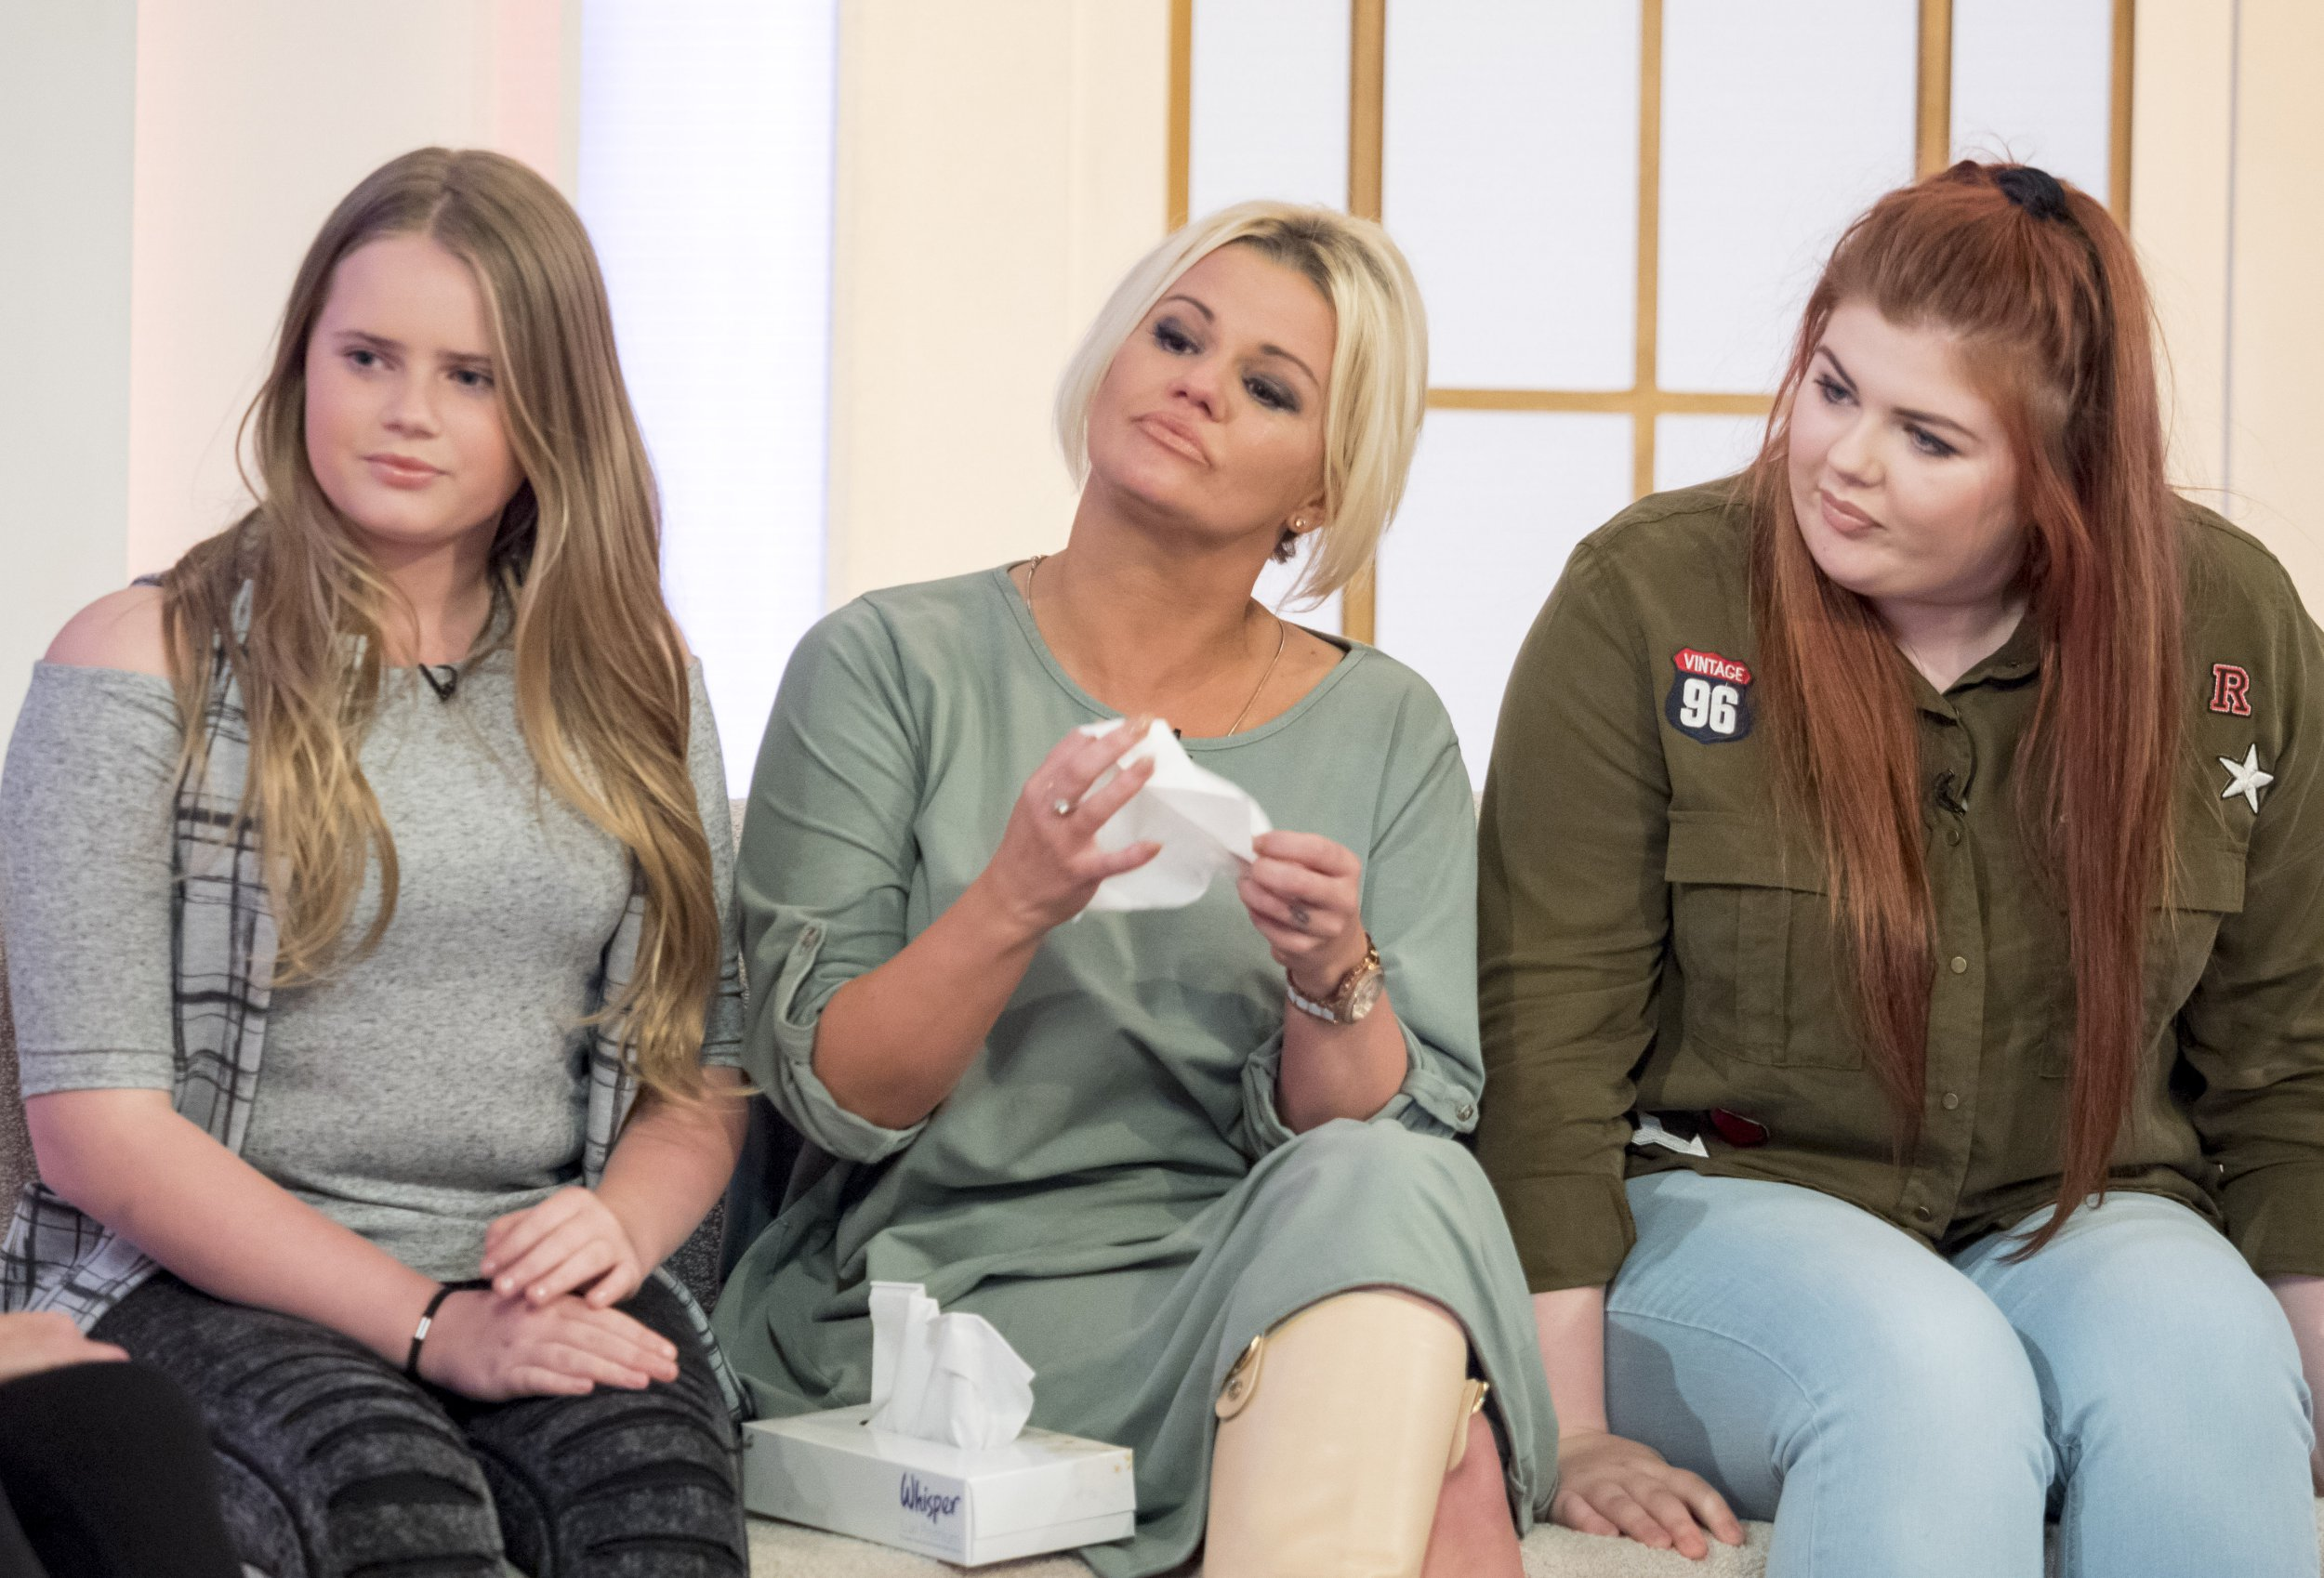 Editorial use only Mandatory Credit: Photo by Ken McKay/ITV/REX/Shutterstock (5682147cs) Kerry Katona with daughters Lily-Sue McFadden and Molly Marie McFadden 'Loose Women' TV show, London, Britain - 11 May 2016